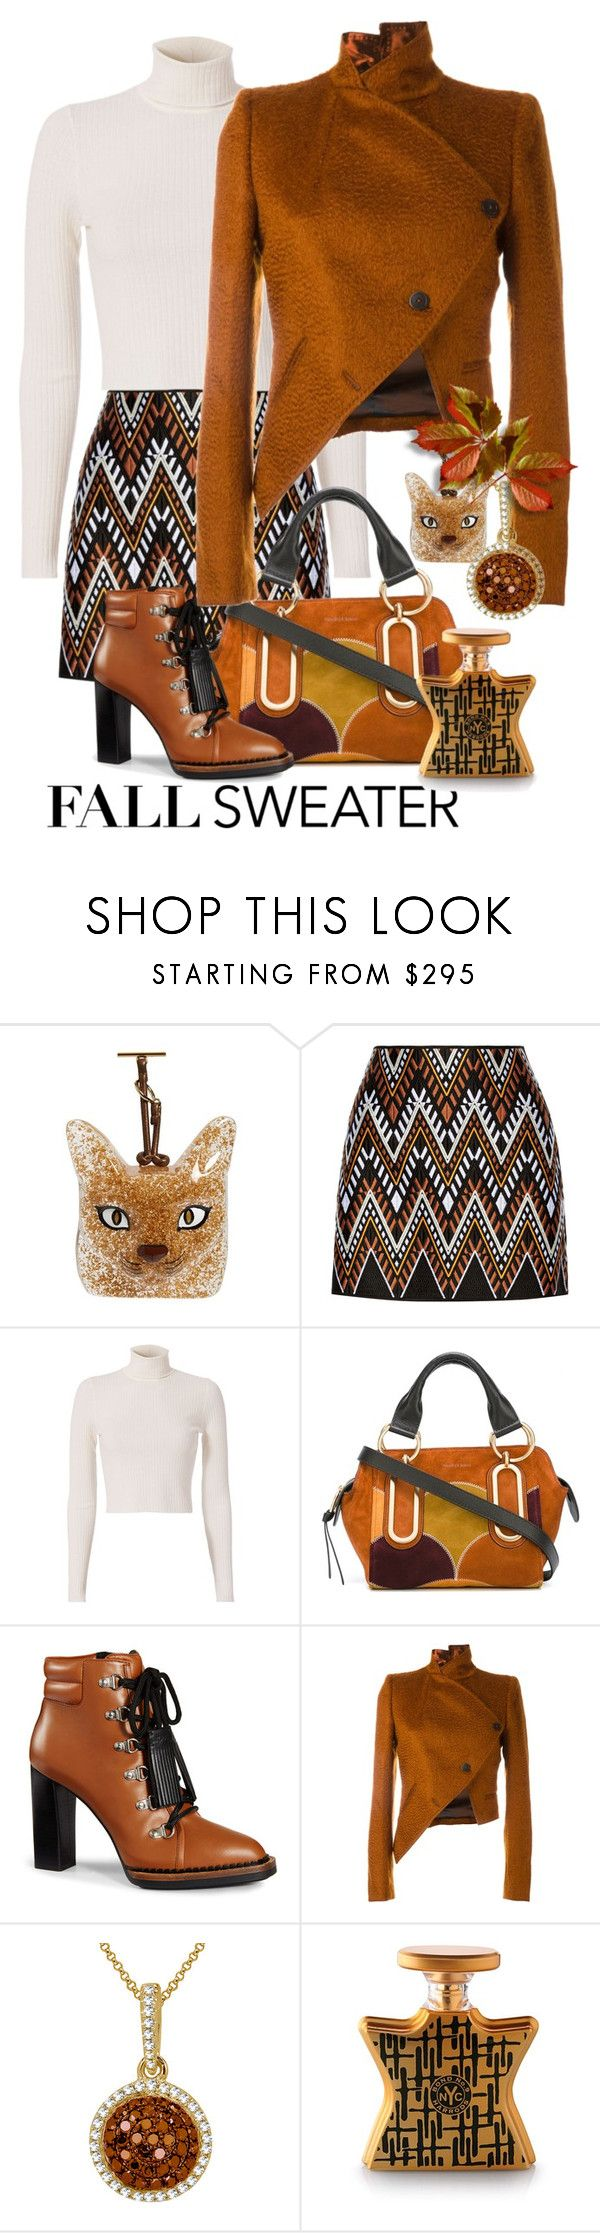 """""""Untitled #1384"""" by sunnydays4everkh ❤ liked on Polyvore featuring Loewe, DKNY, A.L.C., See by Chloé, Tod's, Ann Demeulemeester and Harrods"""